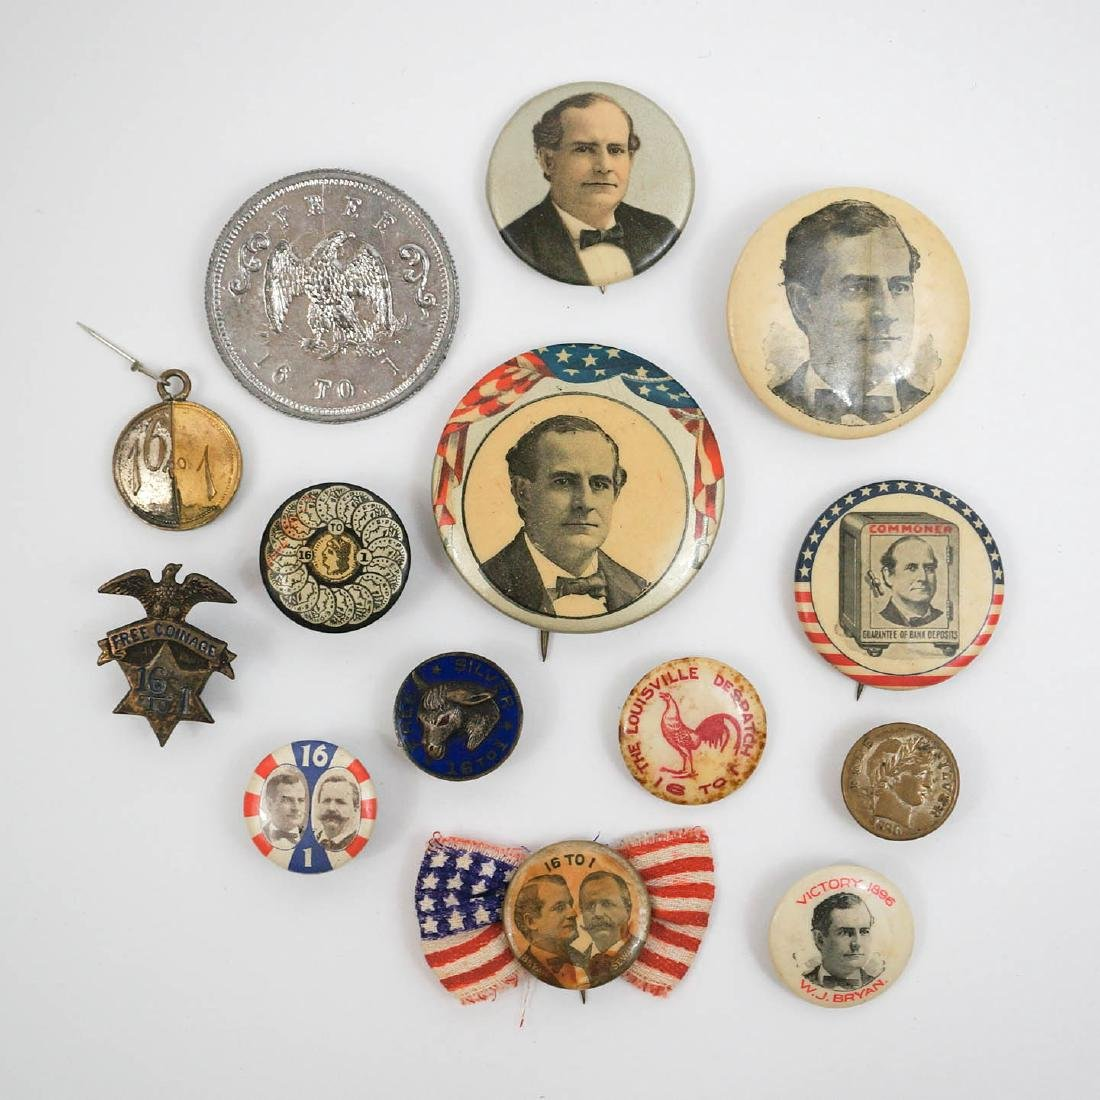 William J. Bryan Group of Fourteen Campaign Items